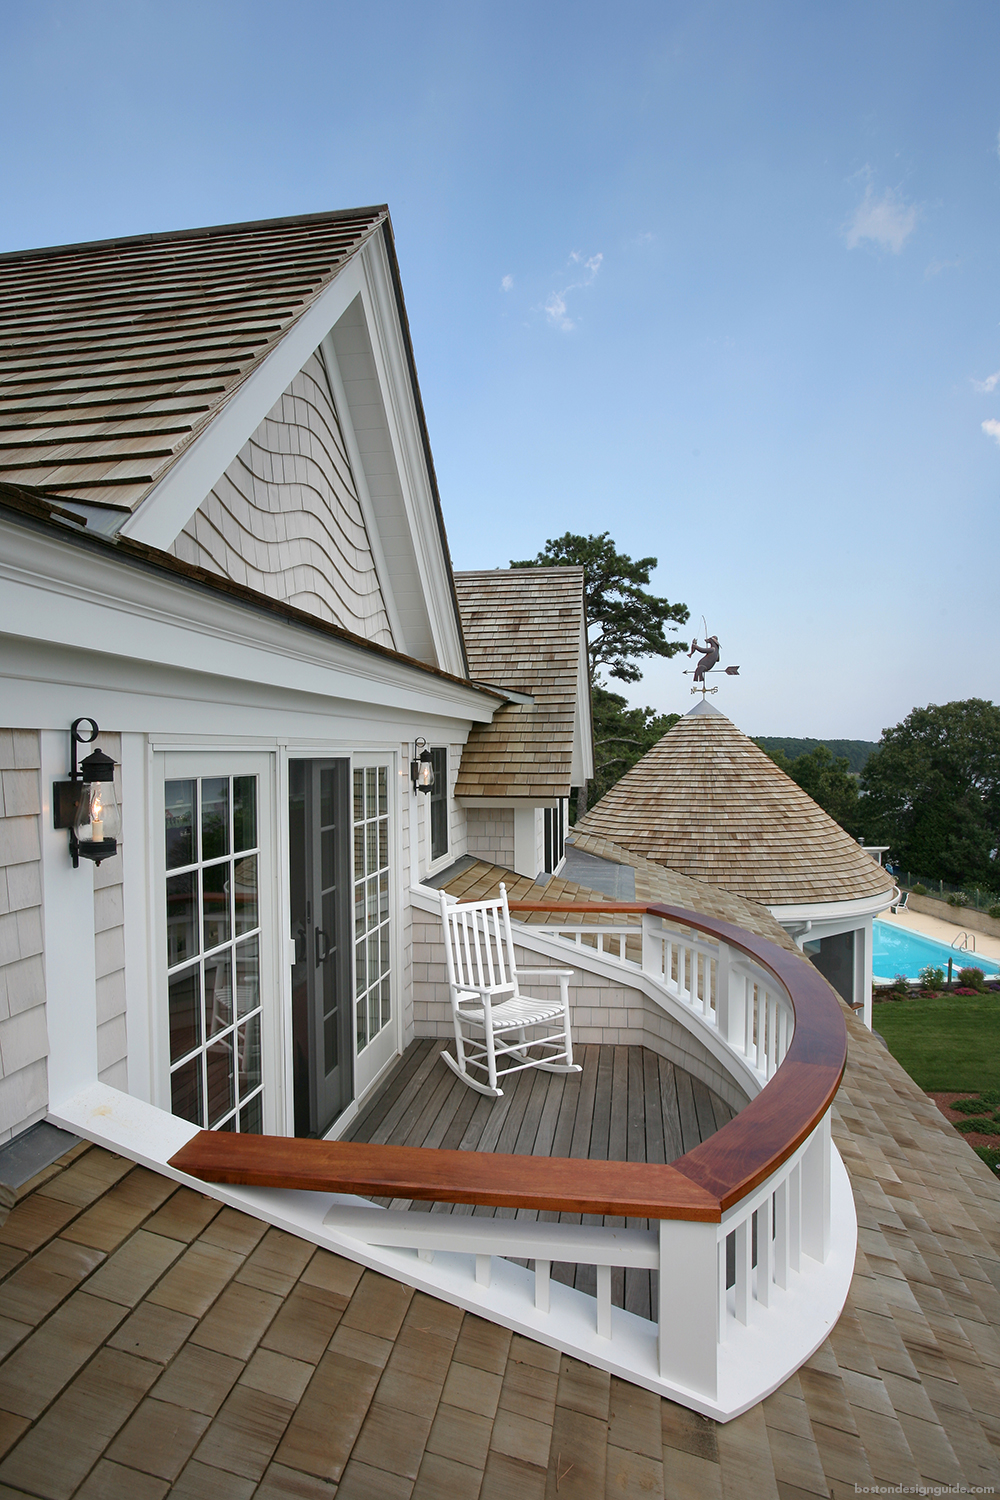 Personalized cape cod homes for over 30 years boston for Cape cod architecture